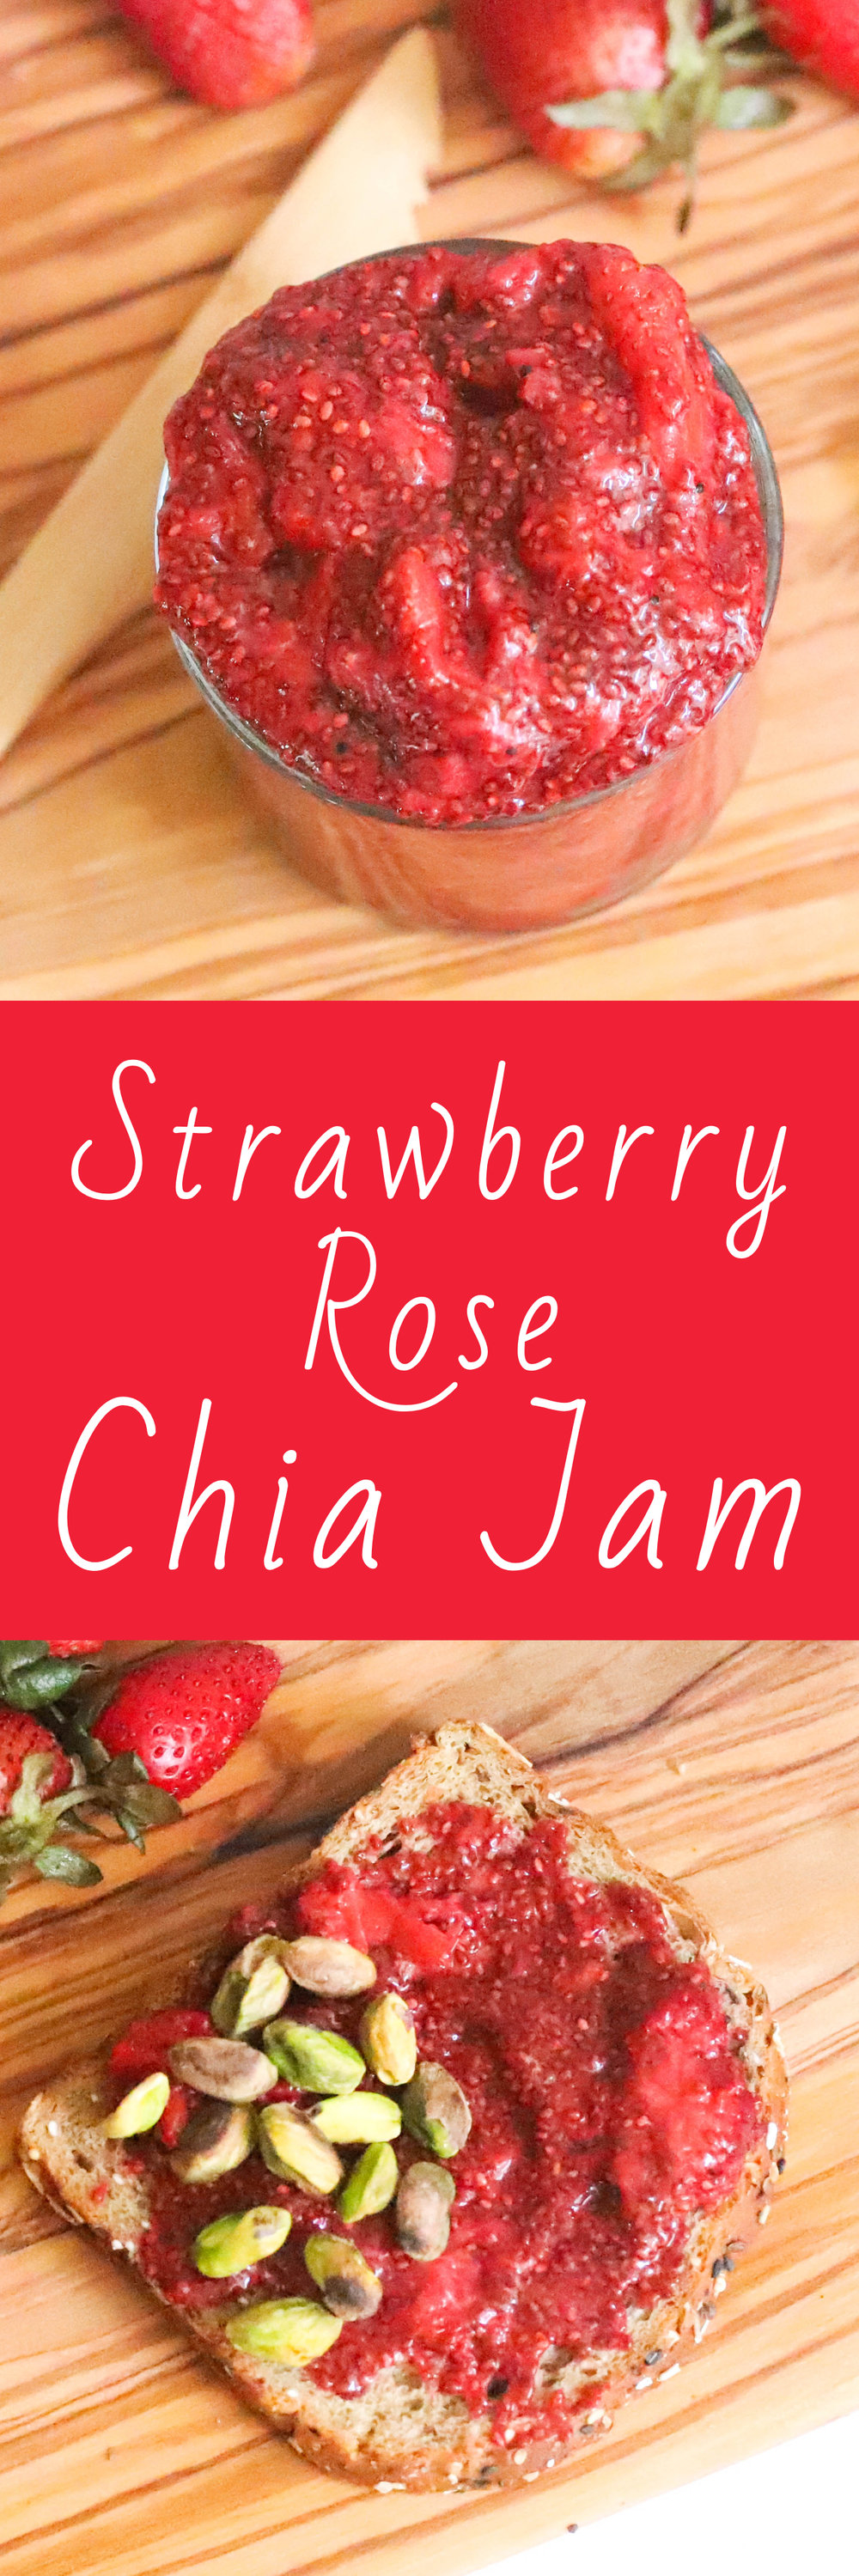 Strawberry Rose Chia Jam